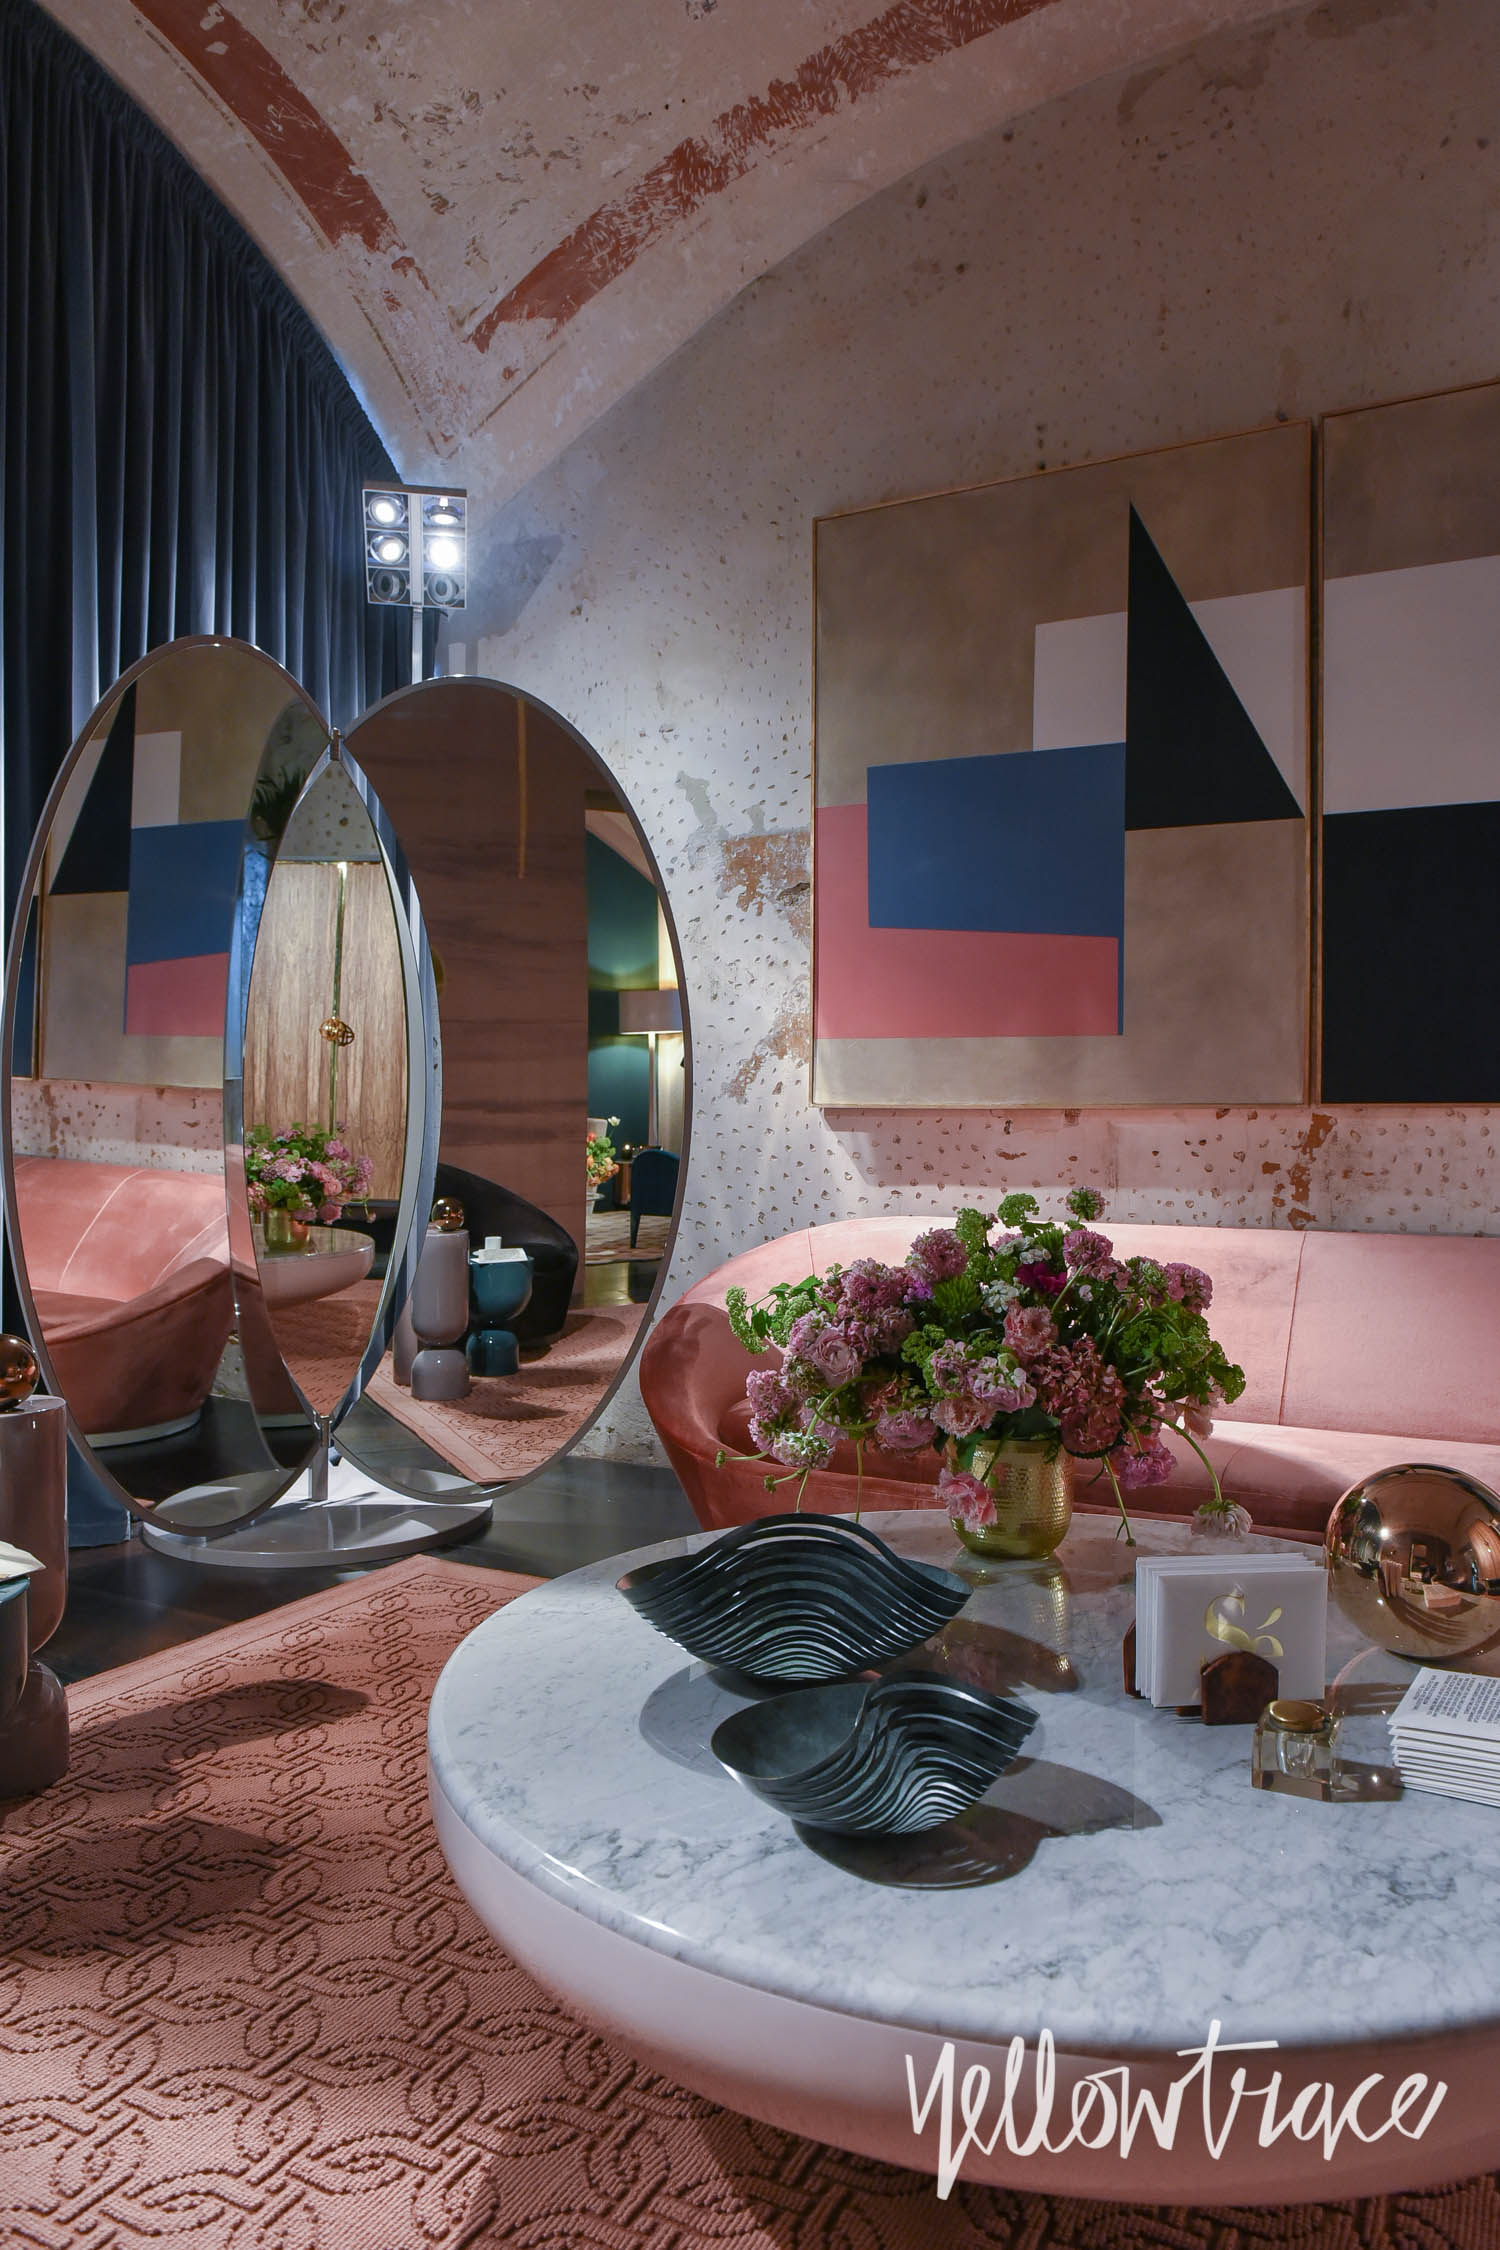 Milan Design Week 2017 Highlights, Sé Collection Apartment at Spazio Rossana Orlandi, Photo © Nick Hughes | #Milantrace2017